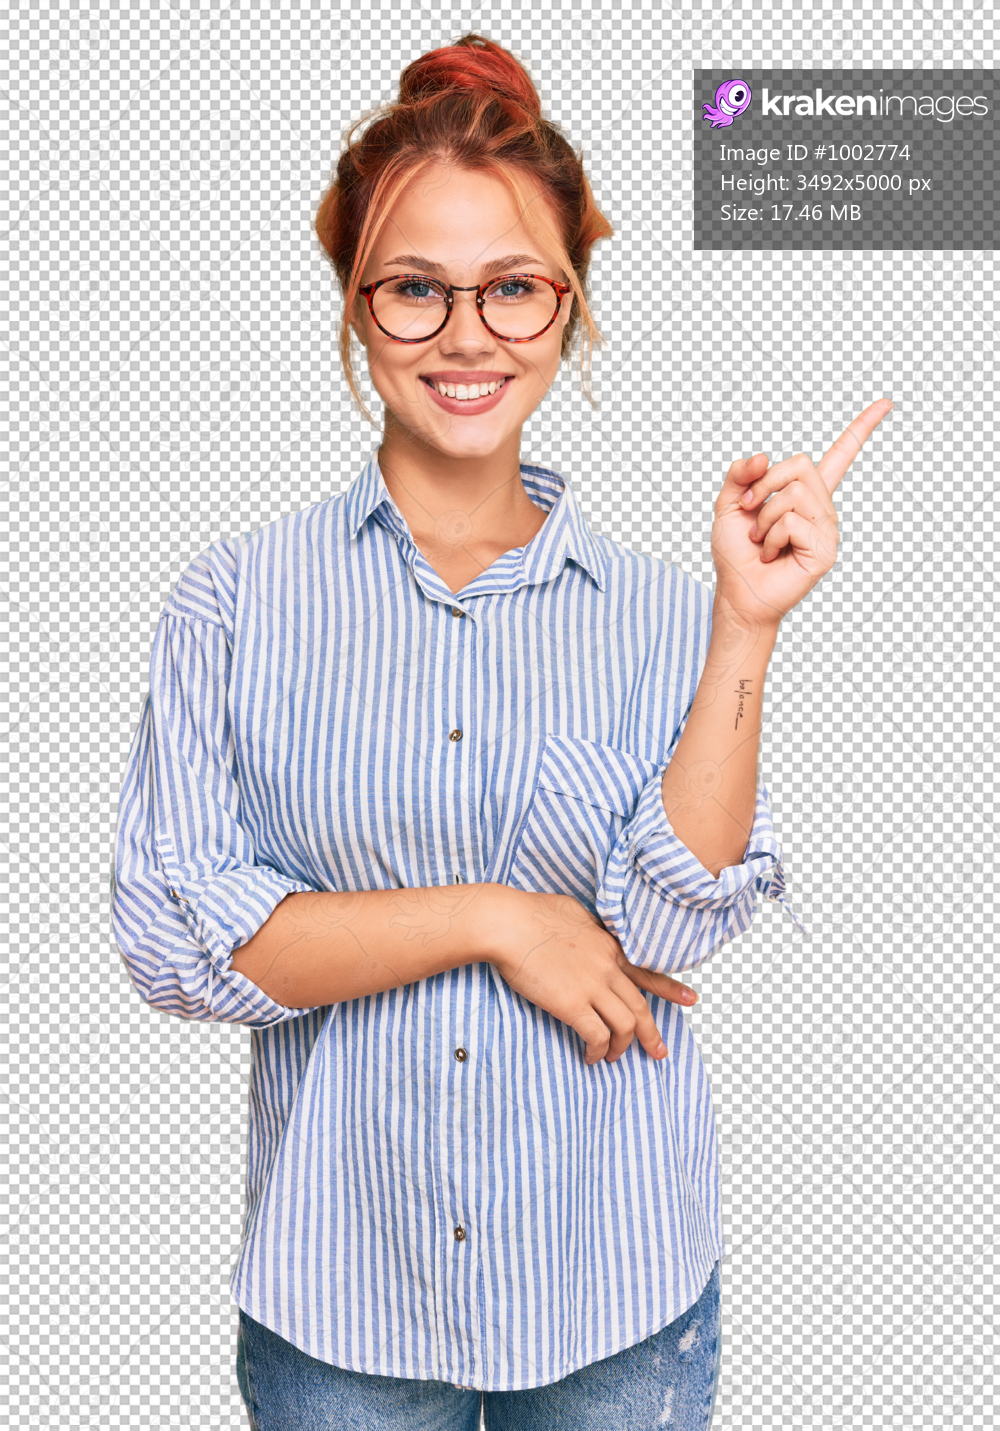 Young redhead woman wearing casual clothes and glasses smiling happy pointing with hand and finger to the side